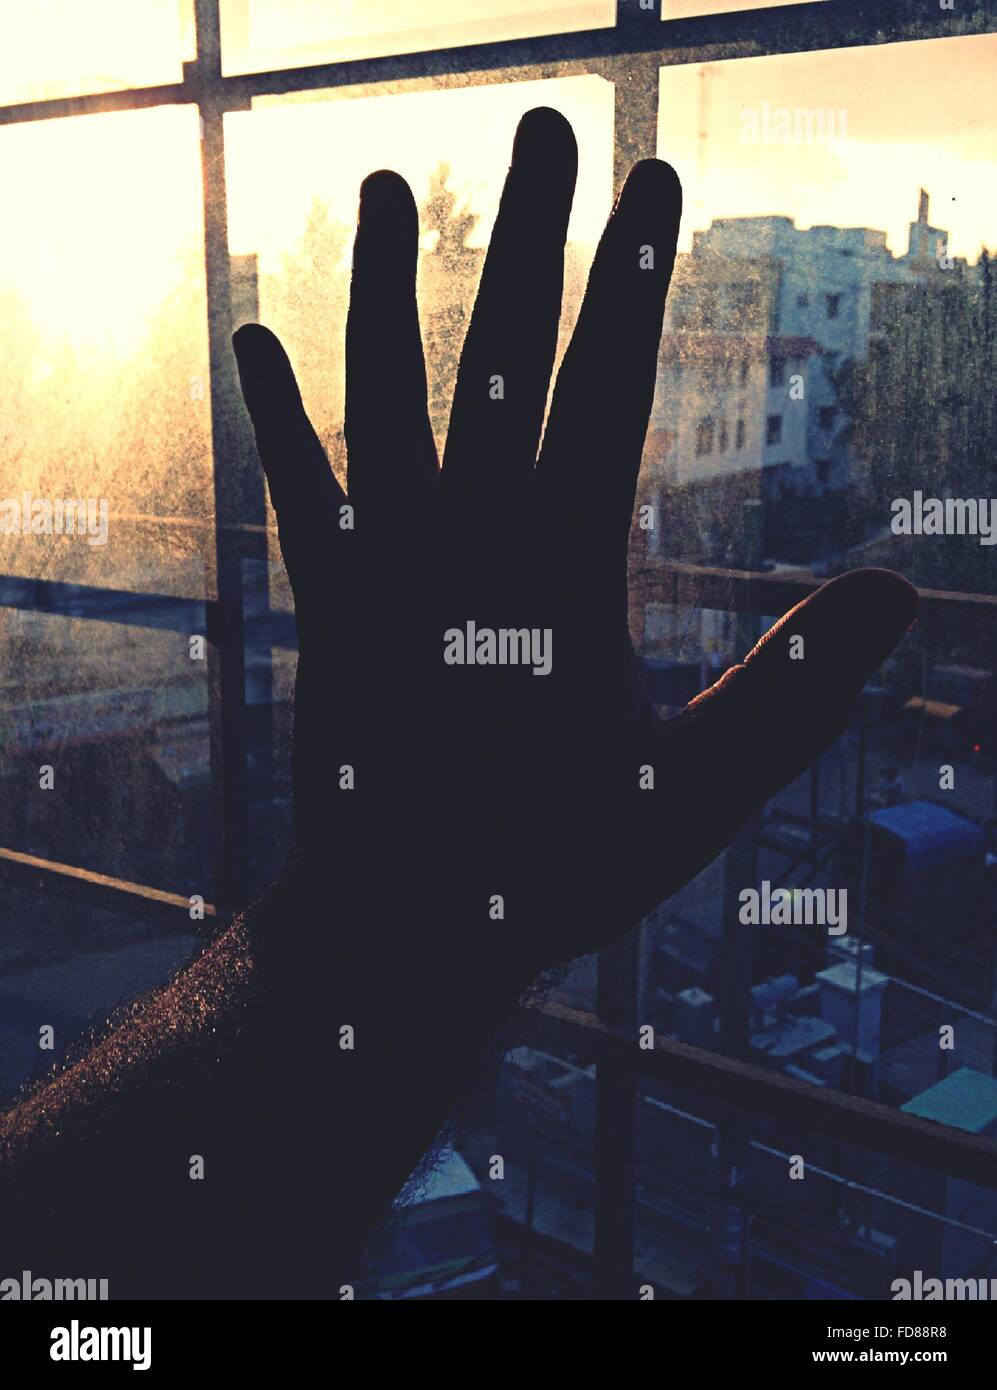 Close-Up Of Silhouette Hand On Window Against Cityscape - Stock Image